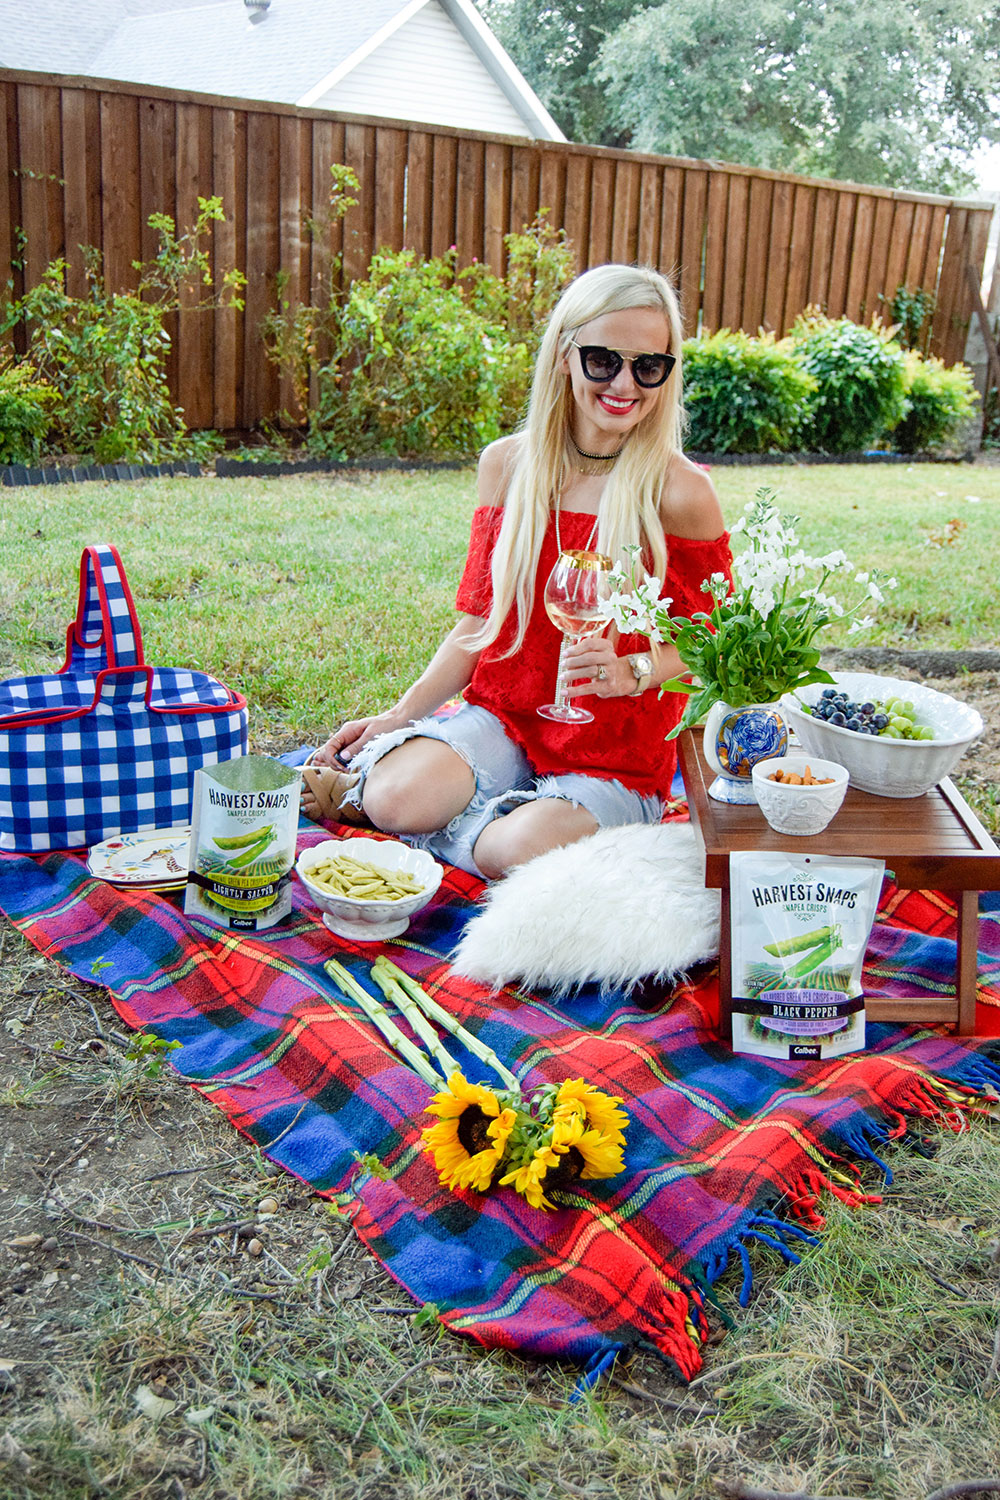 vandi-fair-dallas-fashion-blog-lauren-vandiver-southern-texas-lifestyle-fitness-blogger-healthy-snacking-snacks-harvest-snaps-snap-pea-crisps-picnic-14